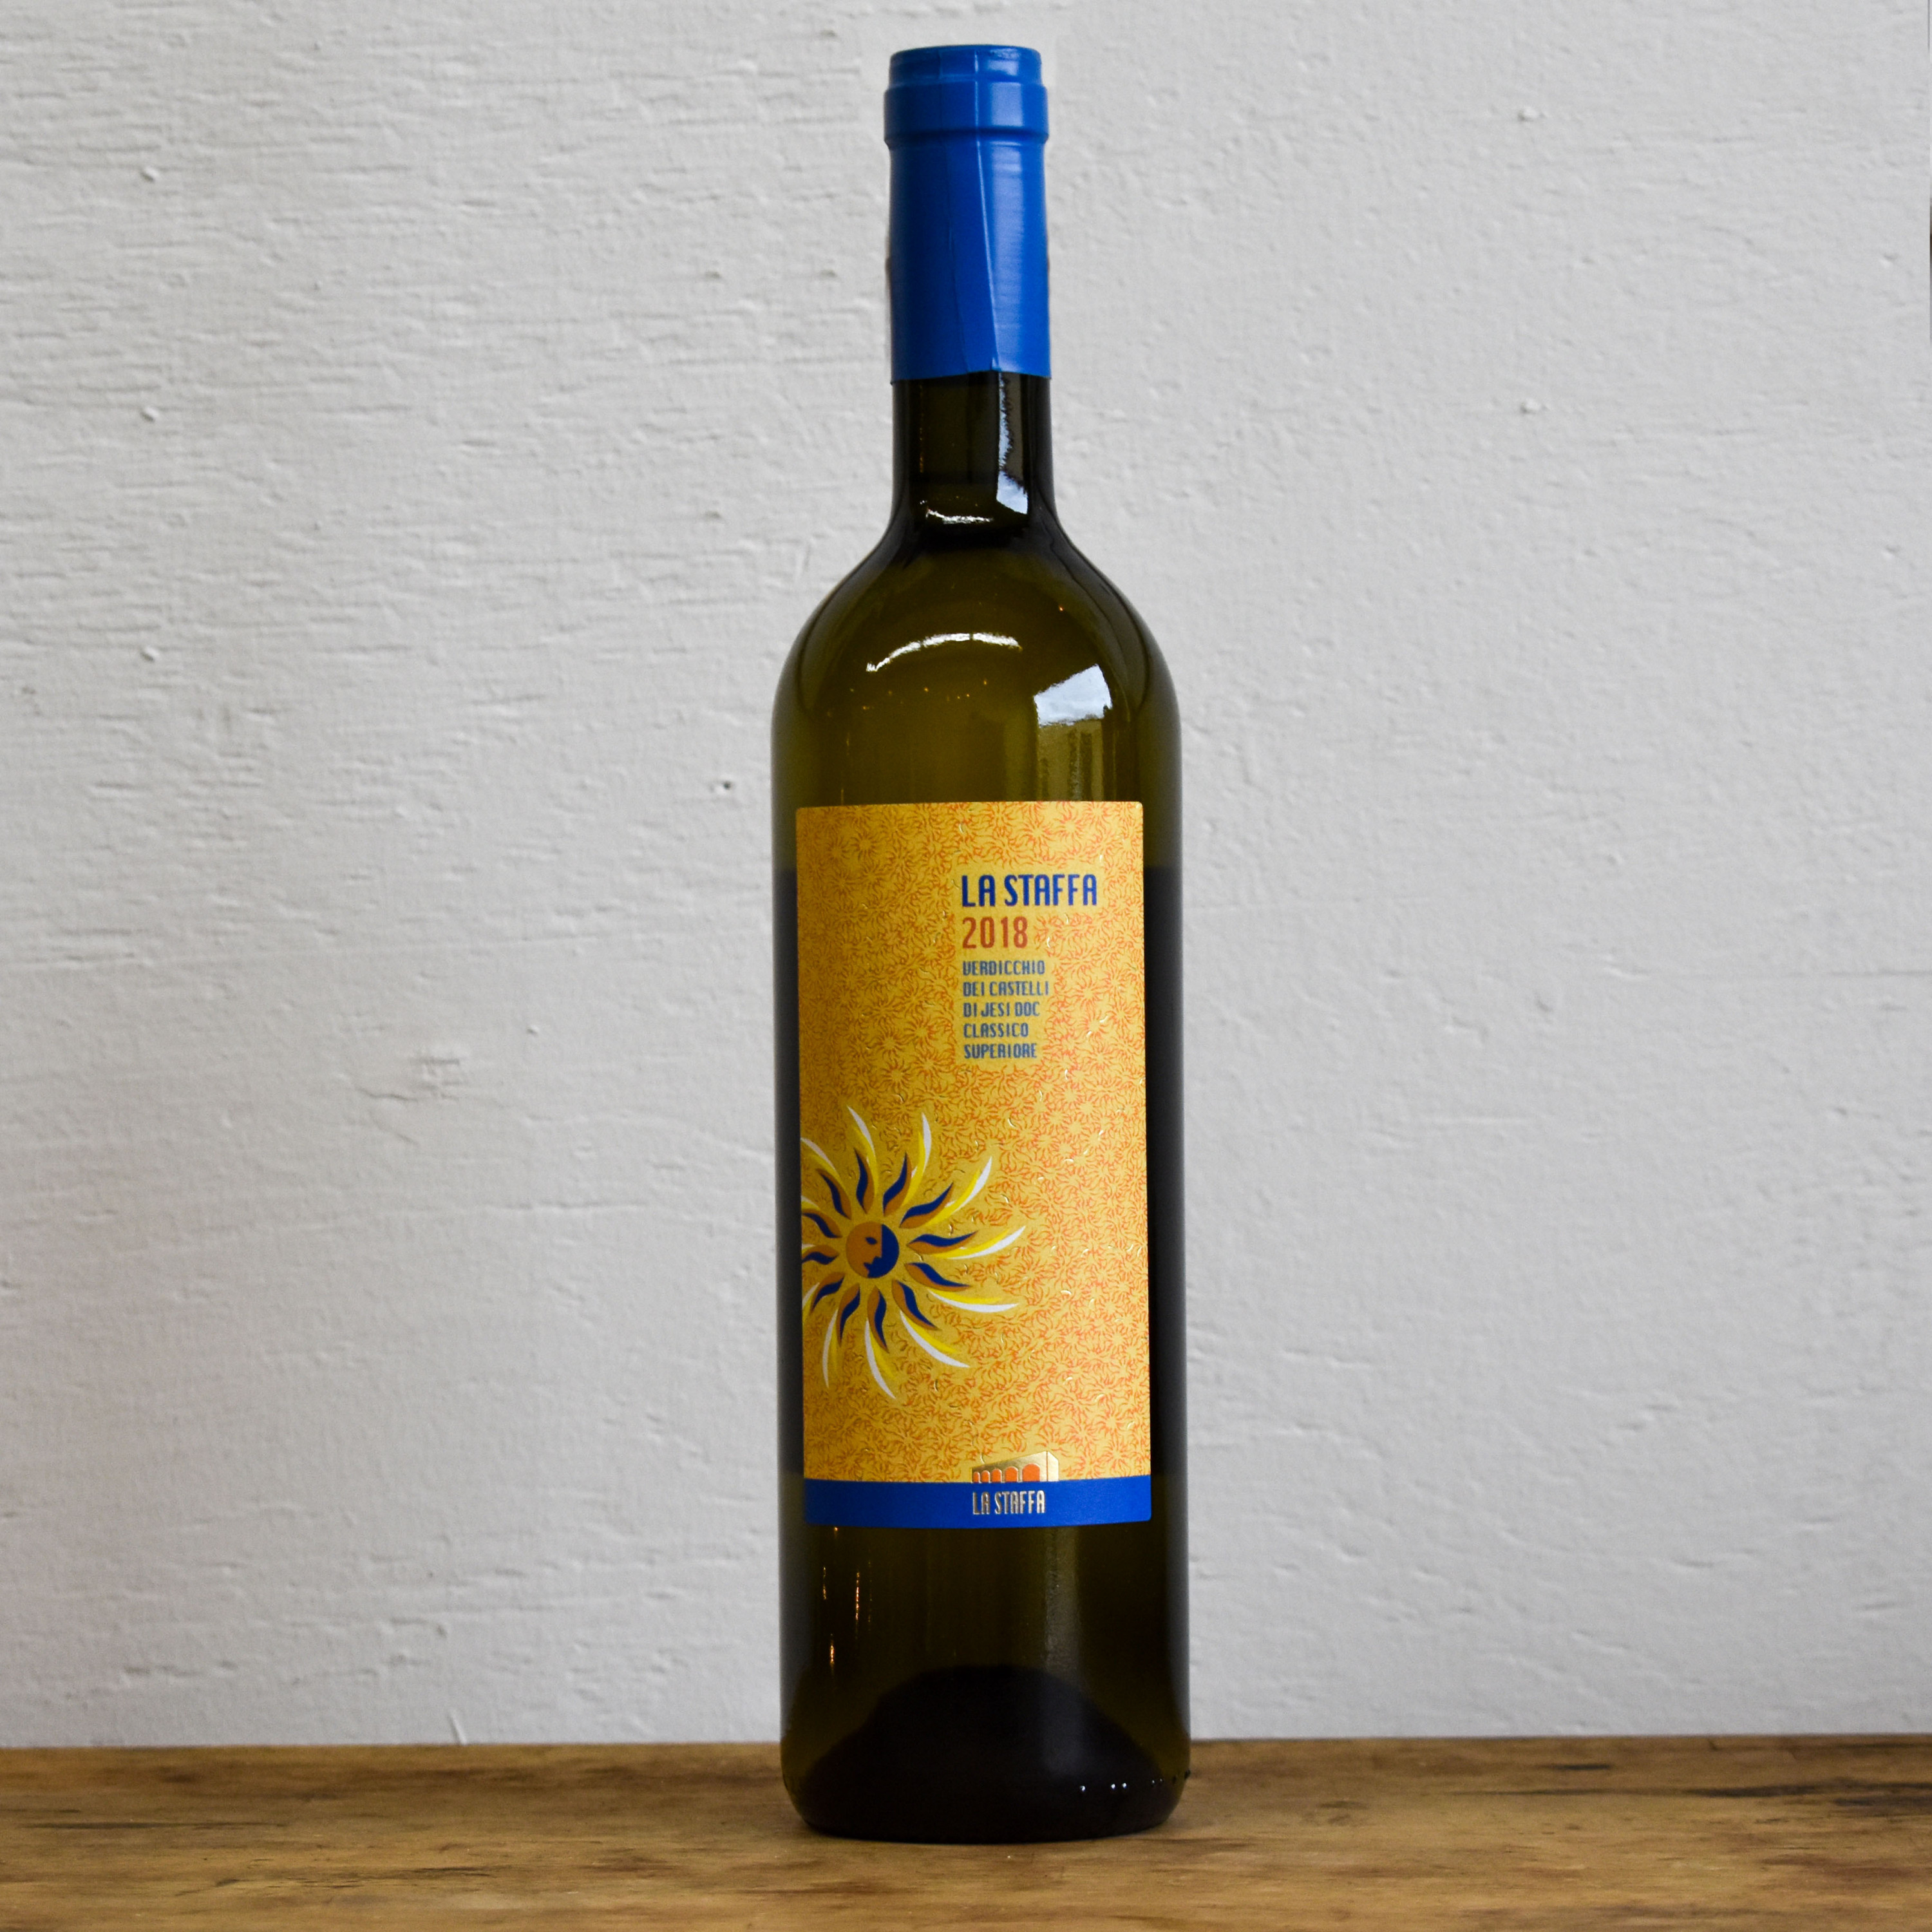 La Staffa Verdicchio 2018 StaffaVerdicchio18 - Crunchy Red Fruit